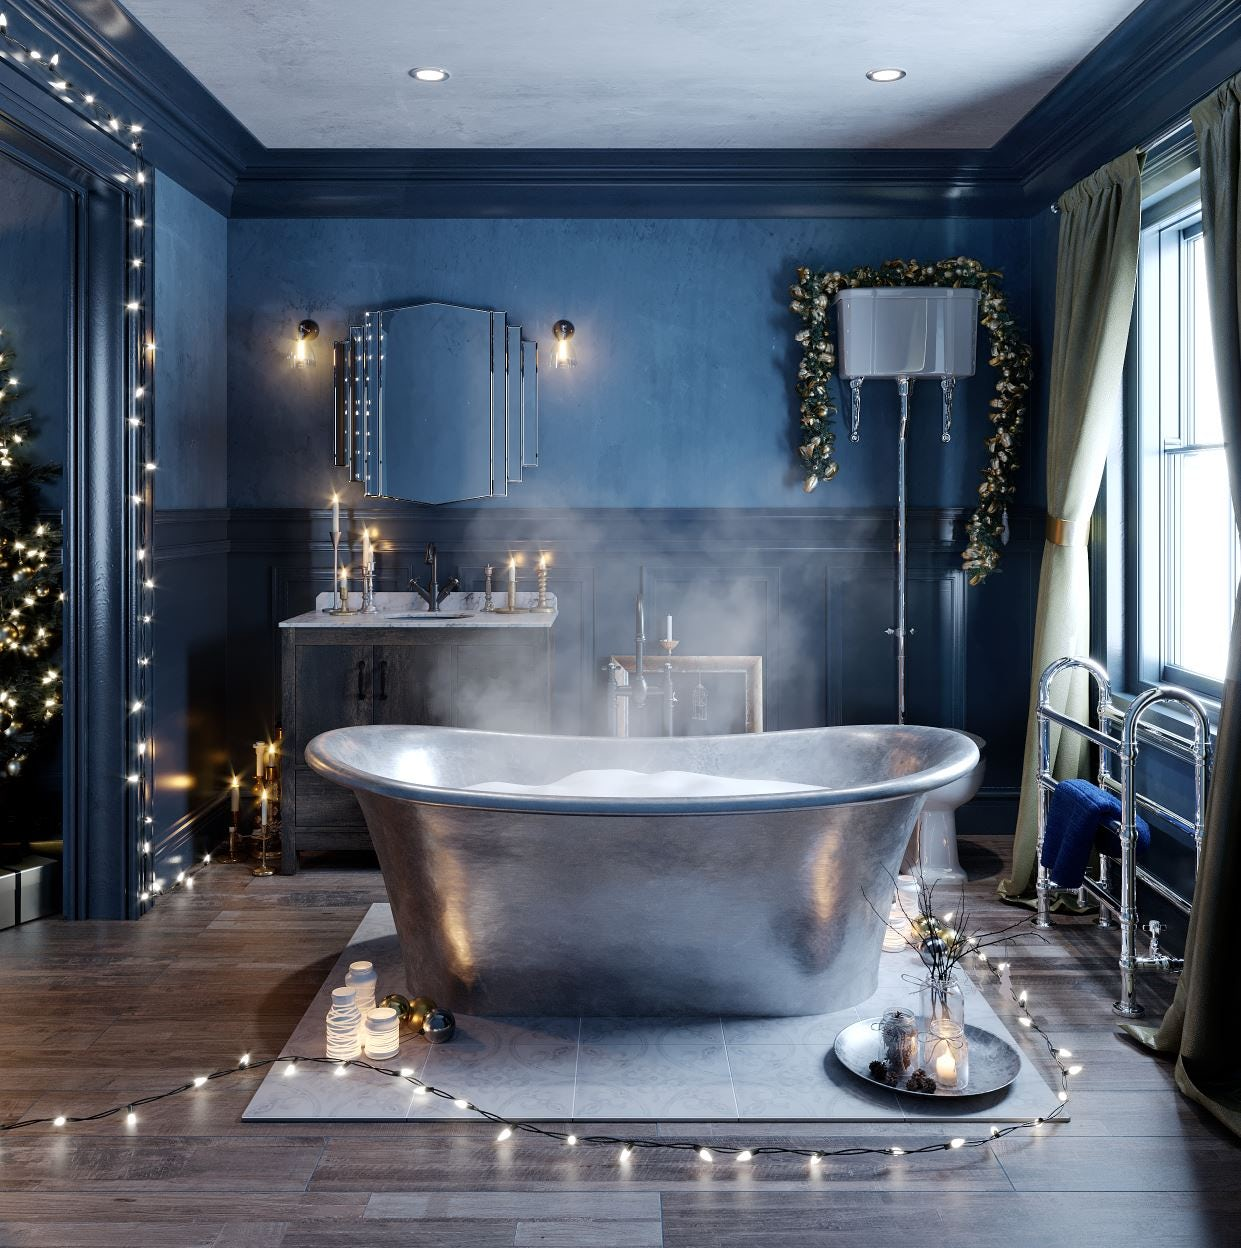 Enchanted Winter family bathroom